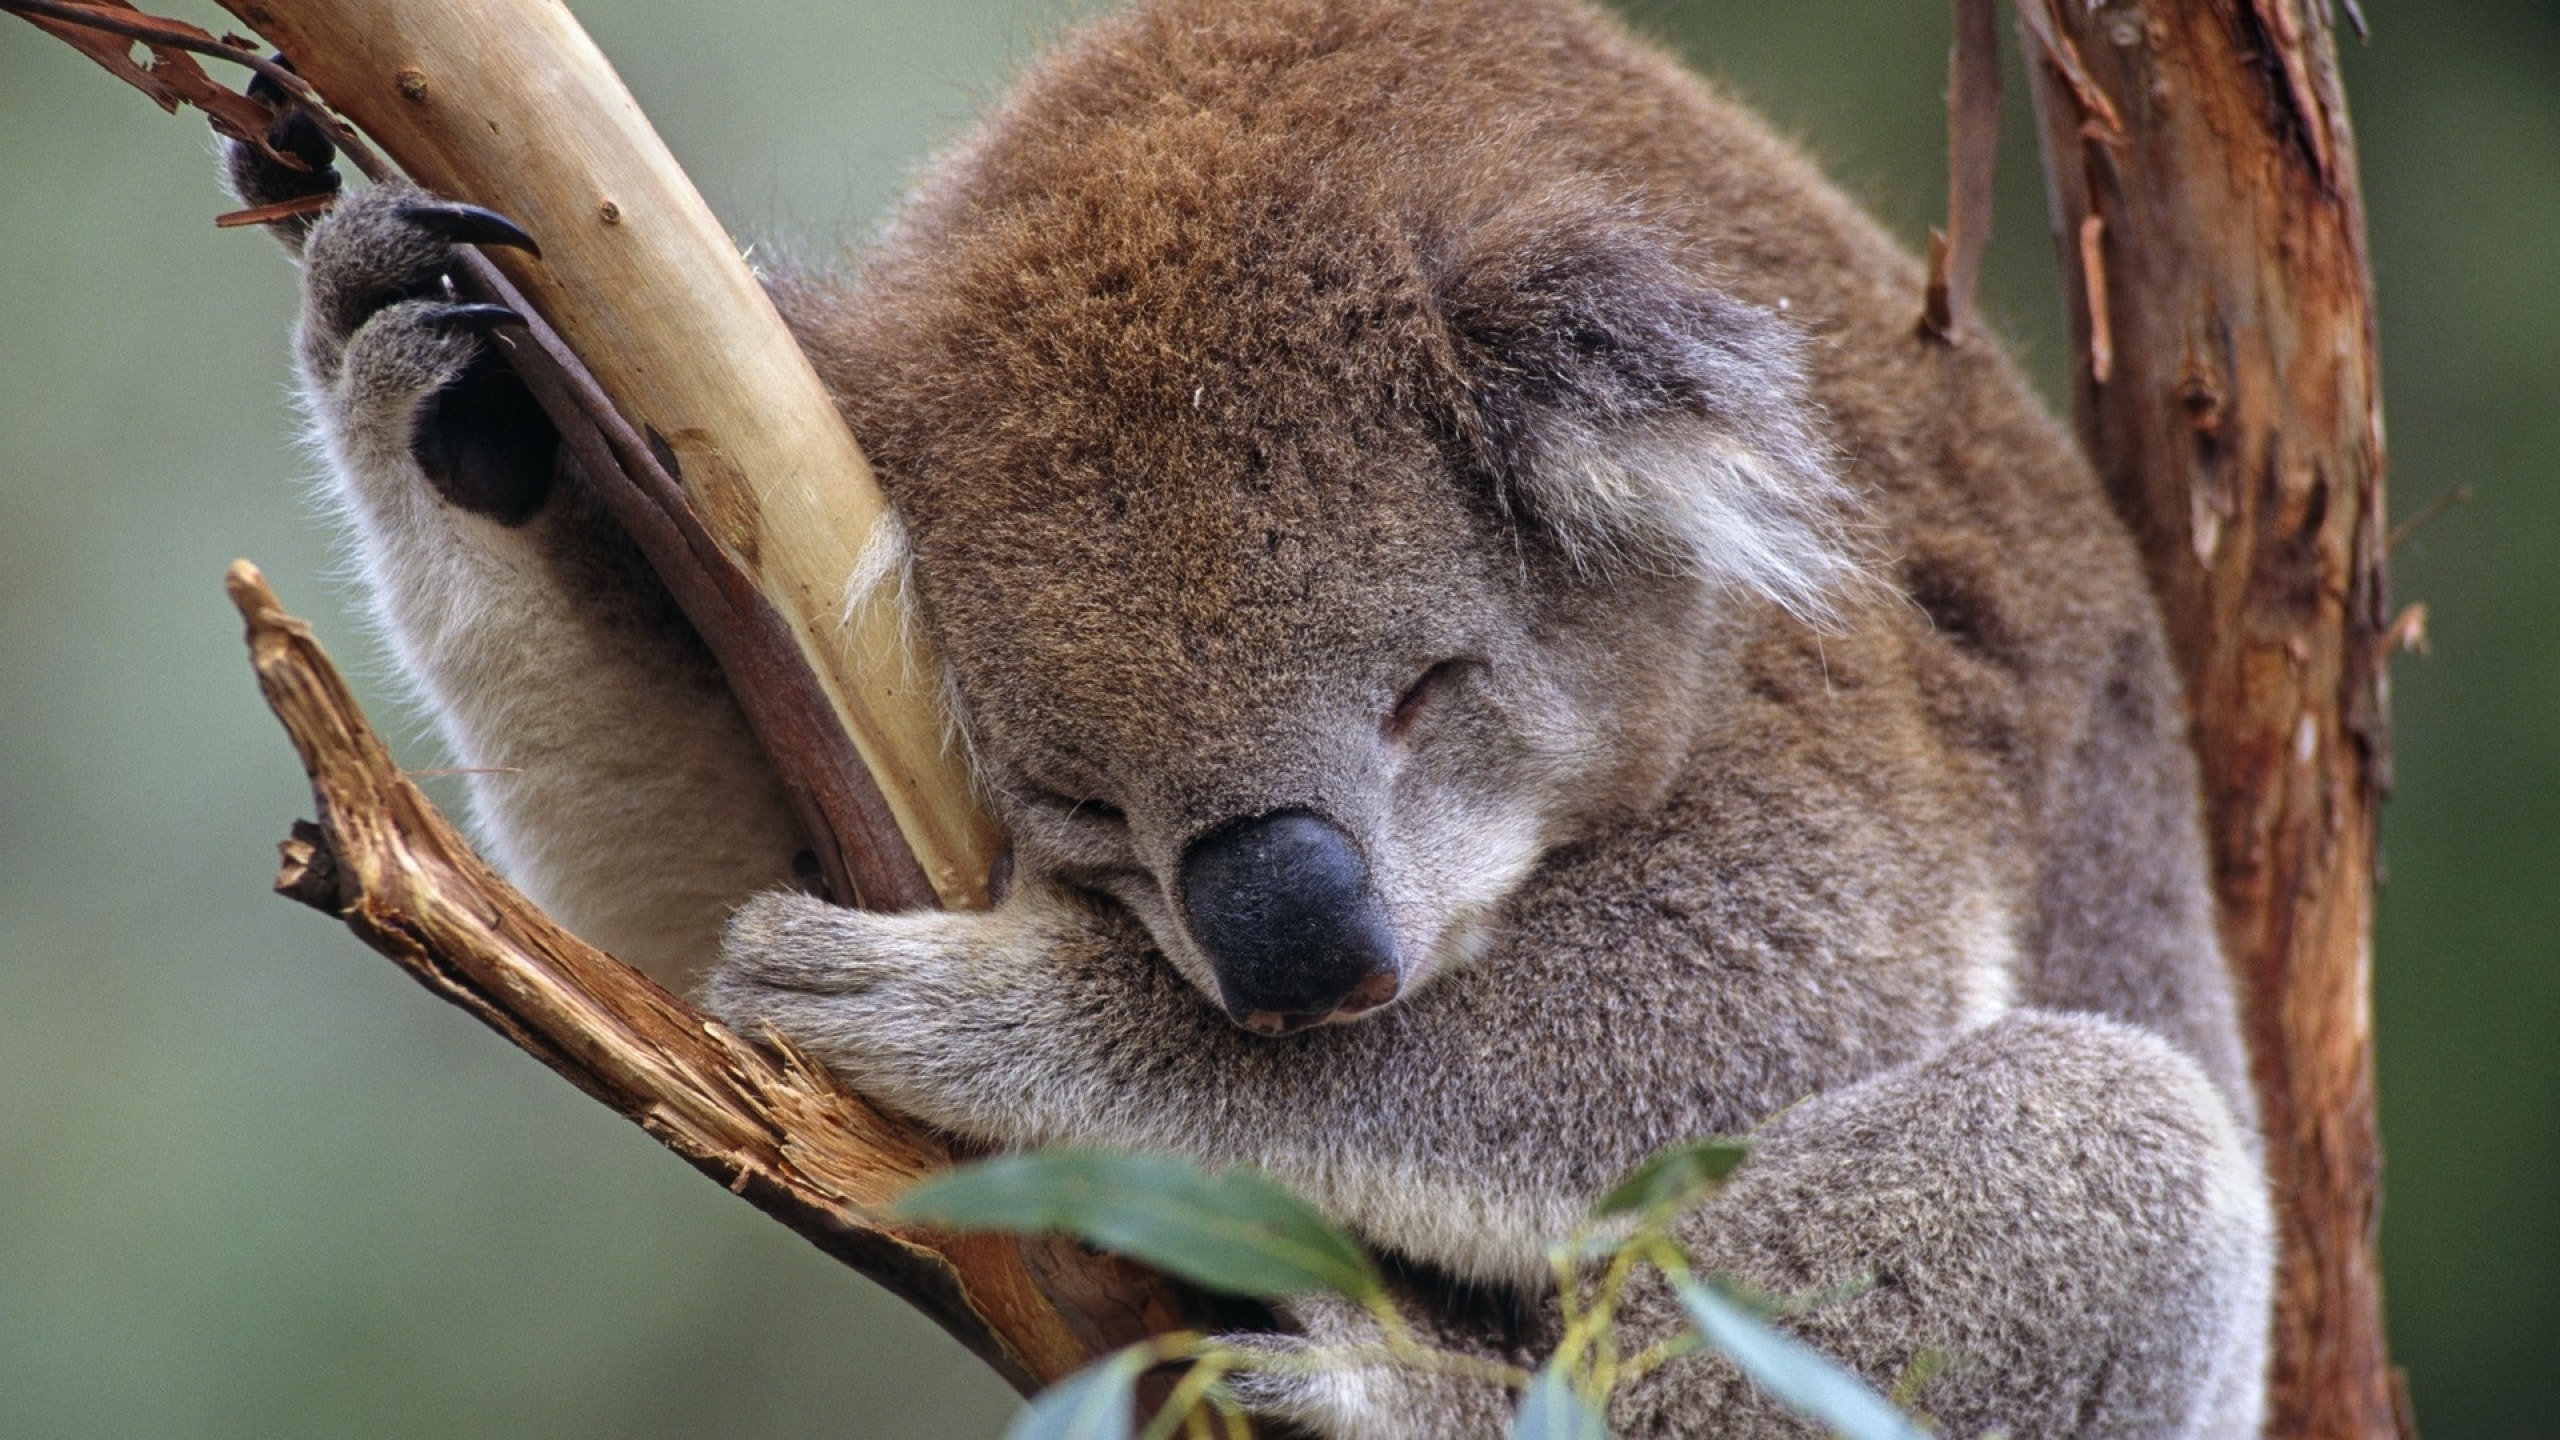 Koala Full hd wallpapers